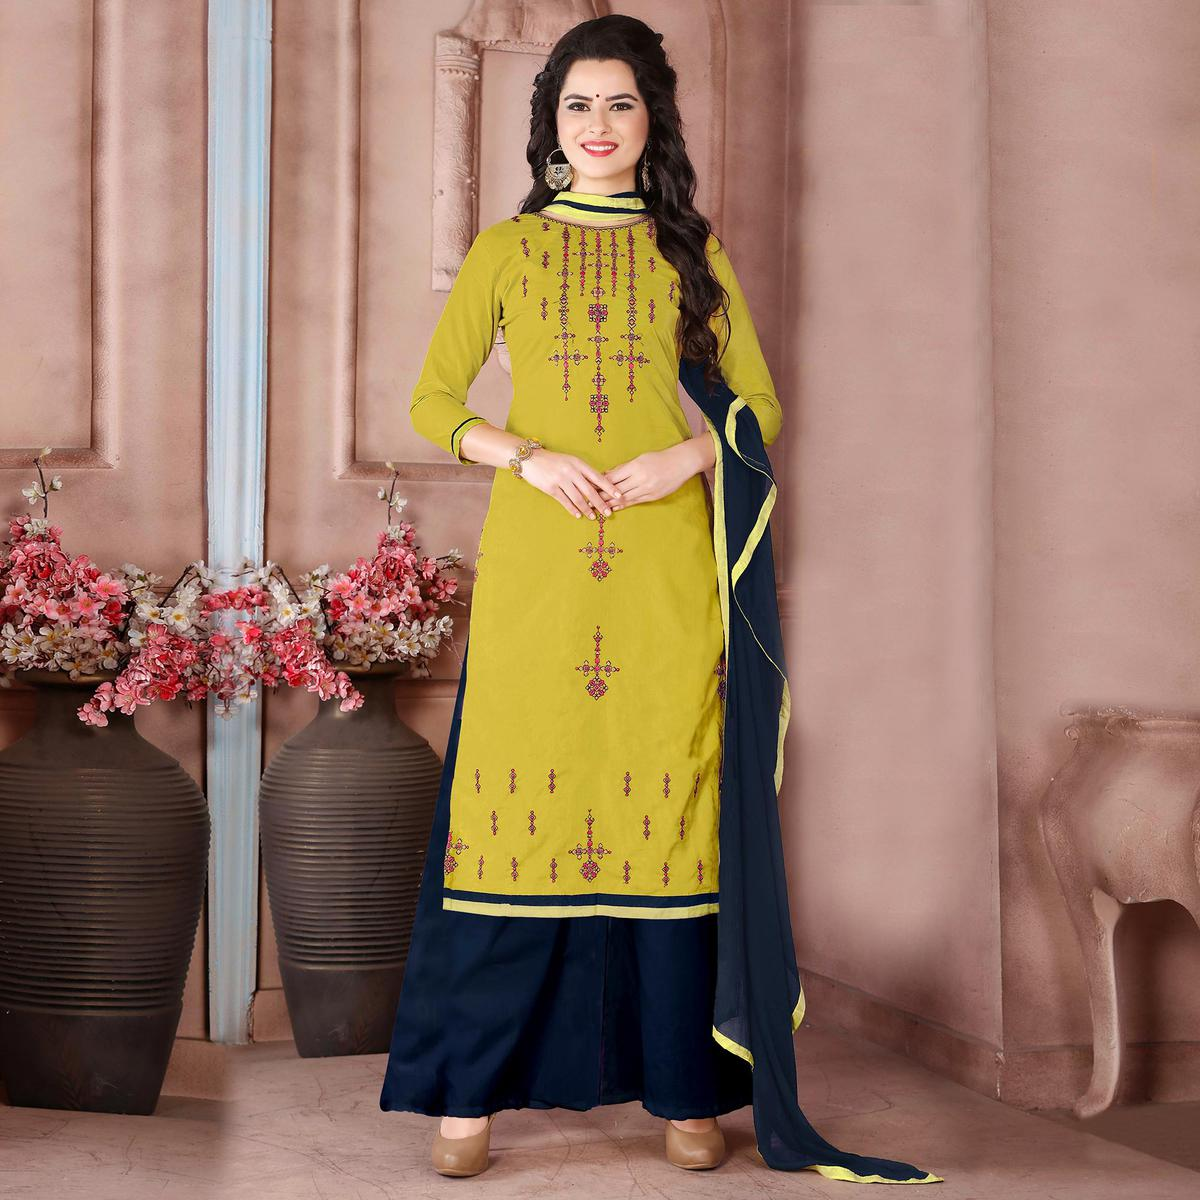 c0dda9cde5 Buy Charming Light Yellow Designer Embroidered Cambric Cotton Palazzo Suit  for womens online India, Best Prices, Reviews - Peachmode